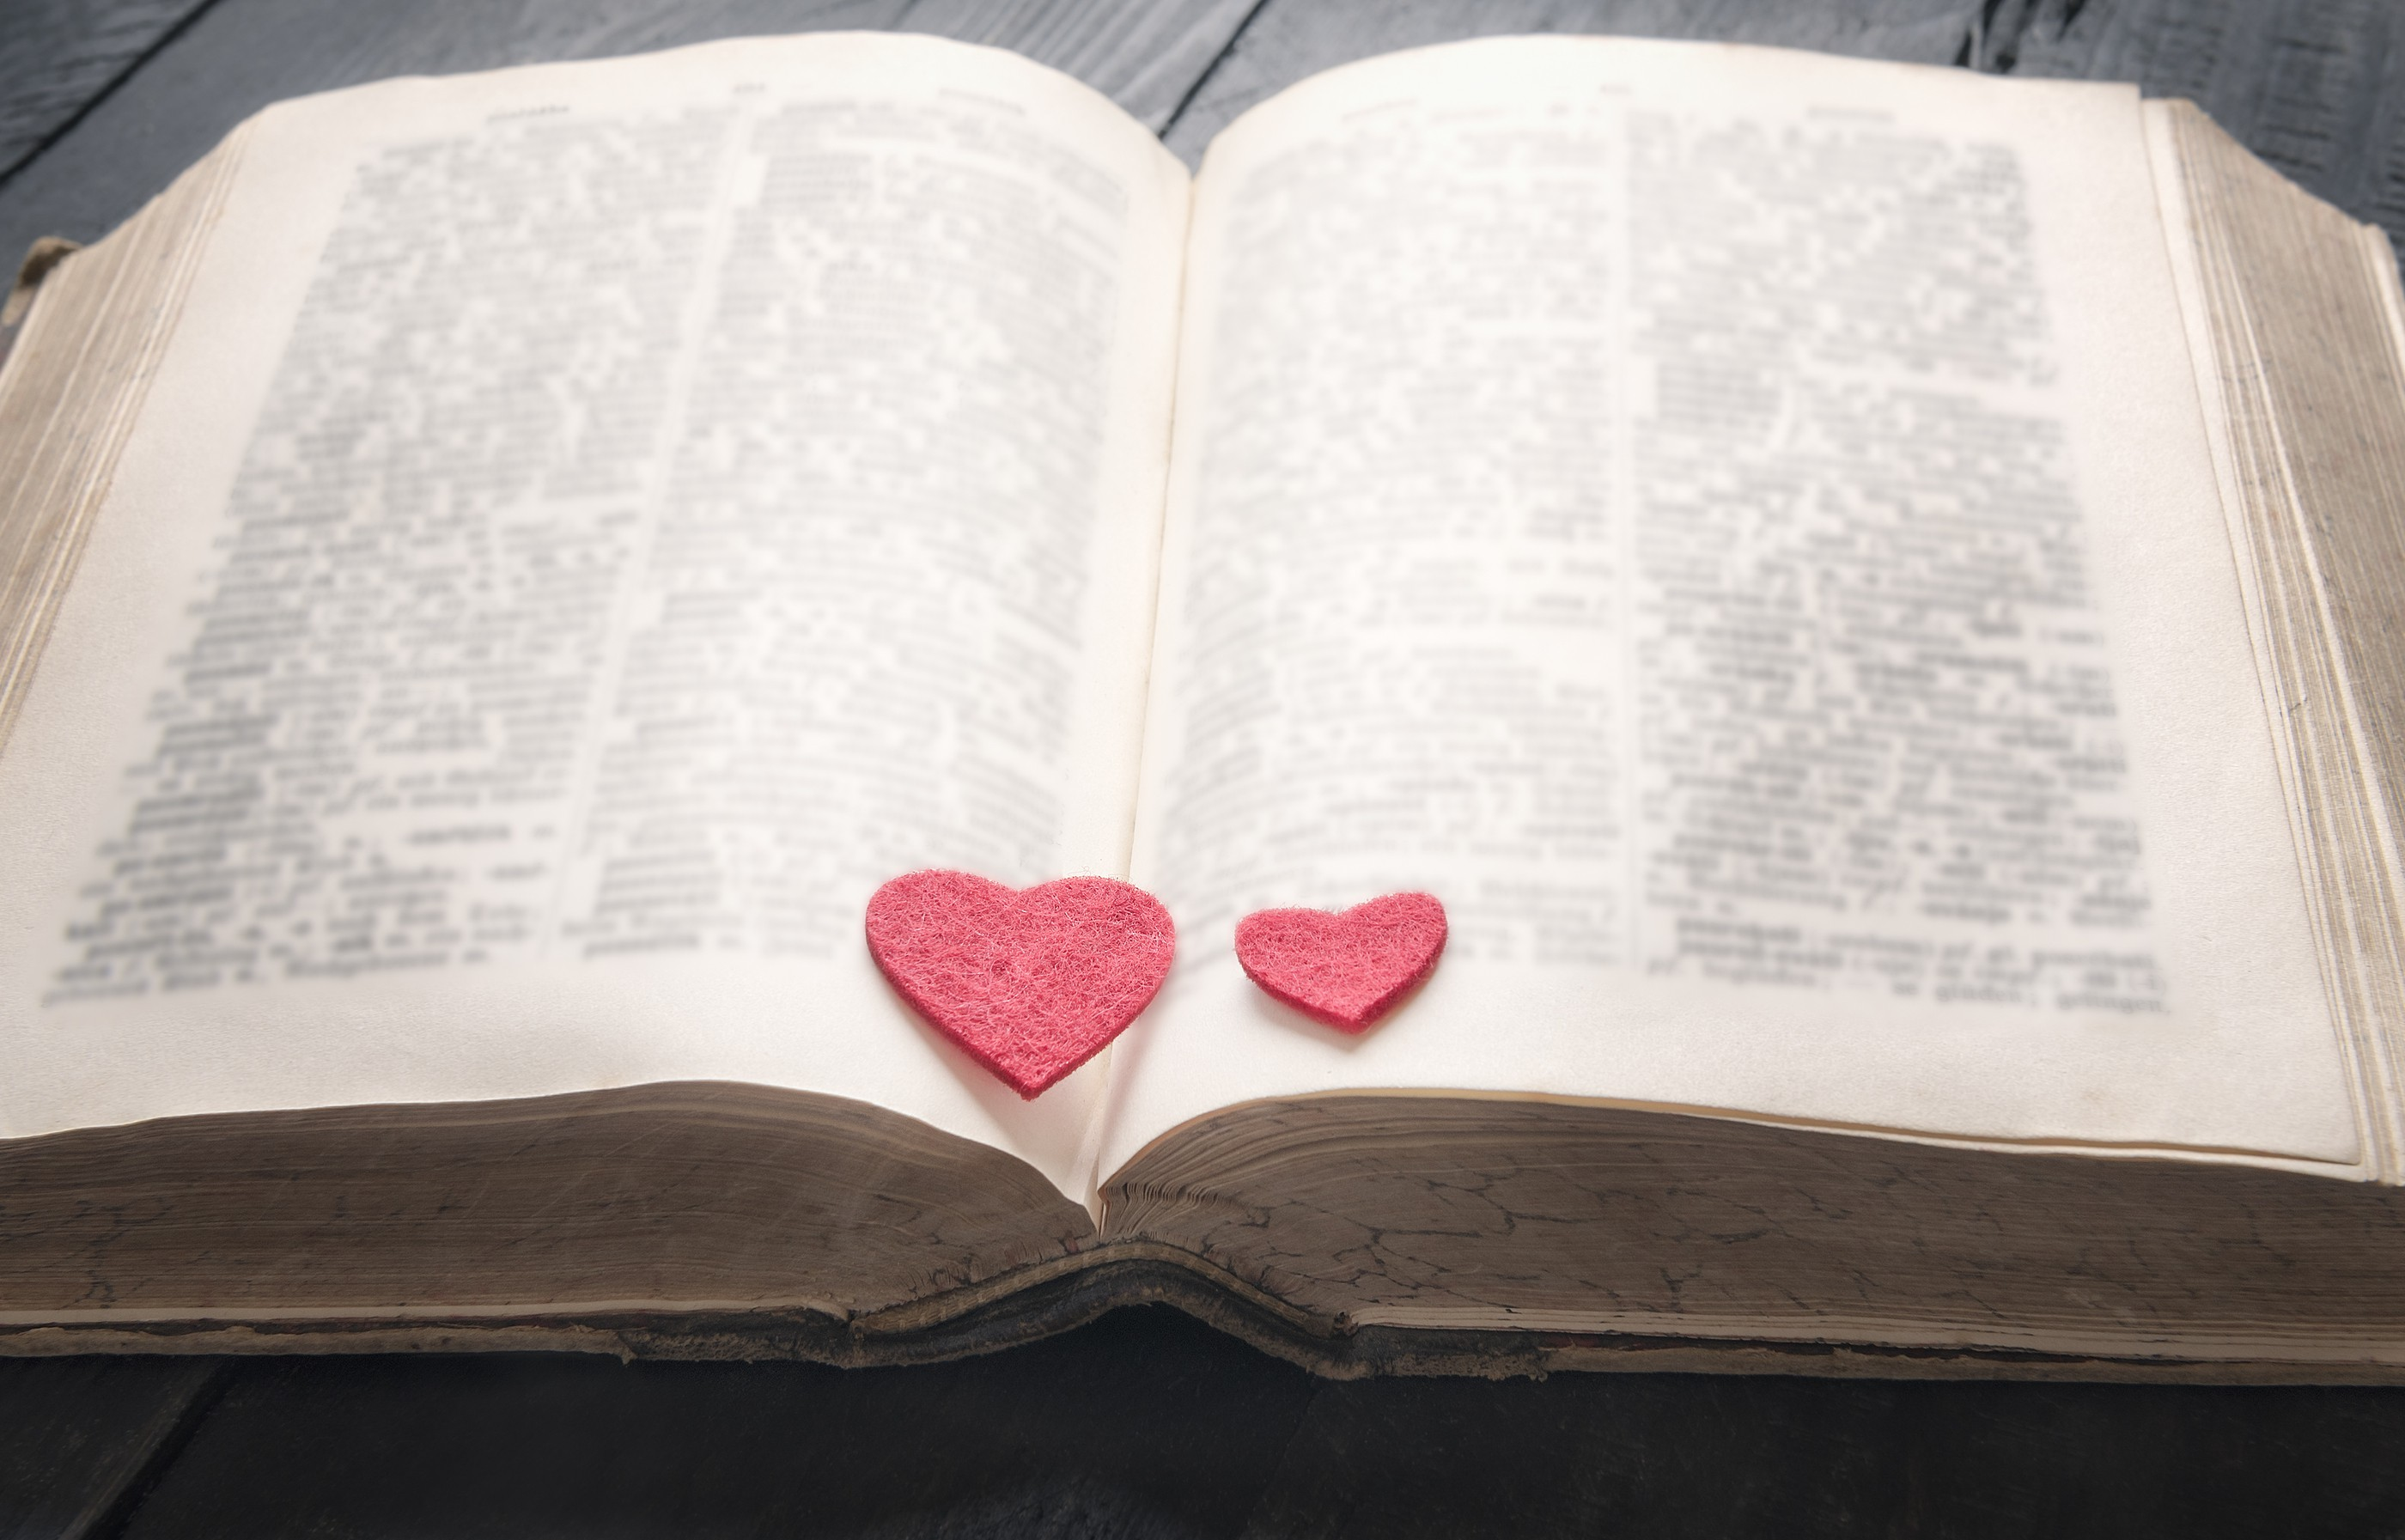 an old open book with hearts in the middle to display that the torah has a love story where Tu Bav originated from